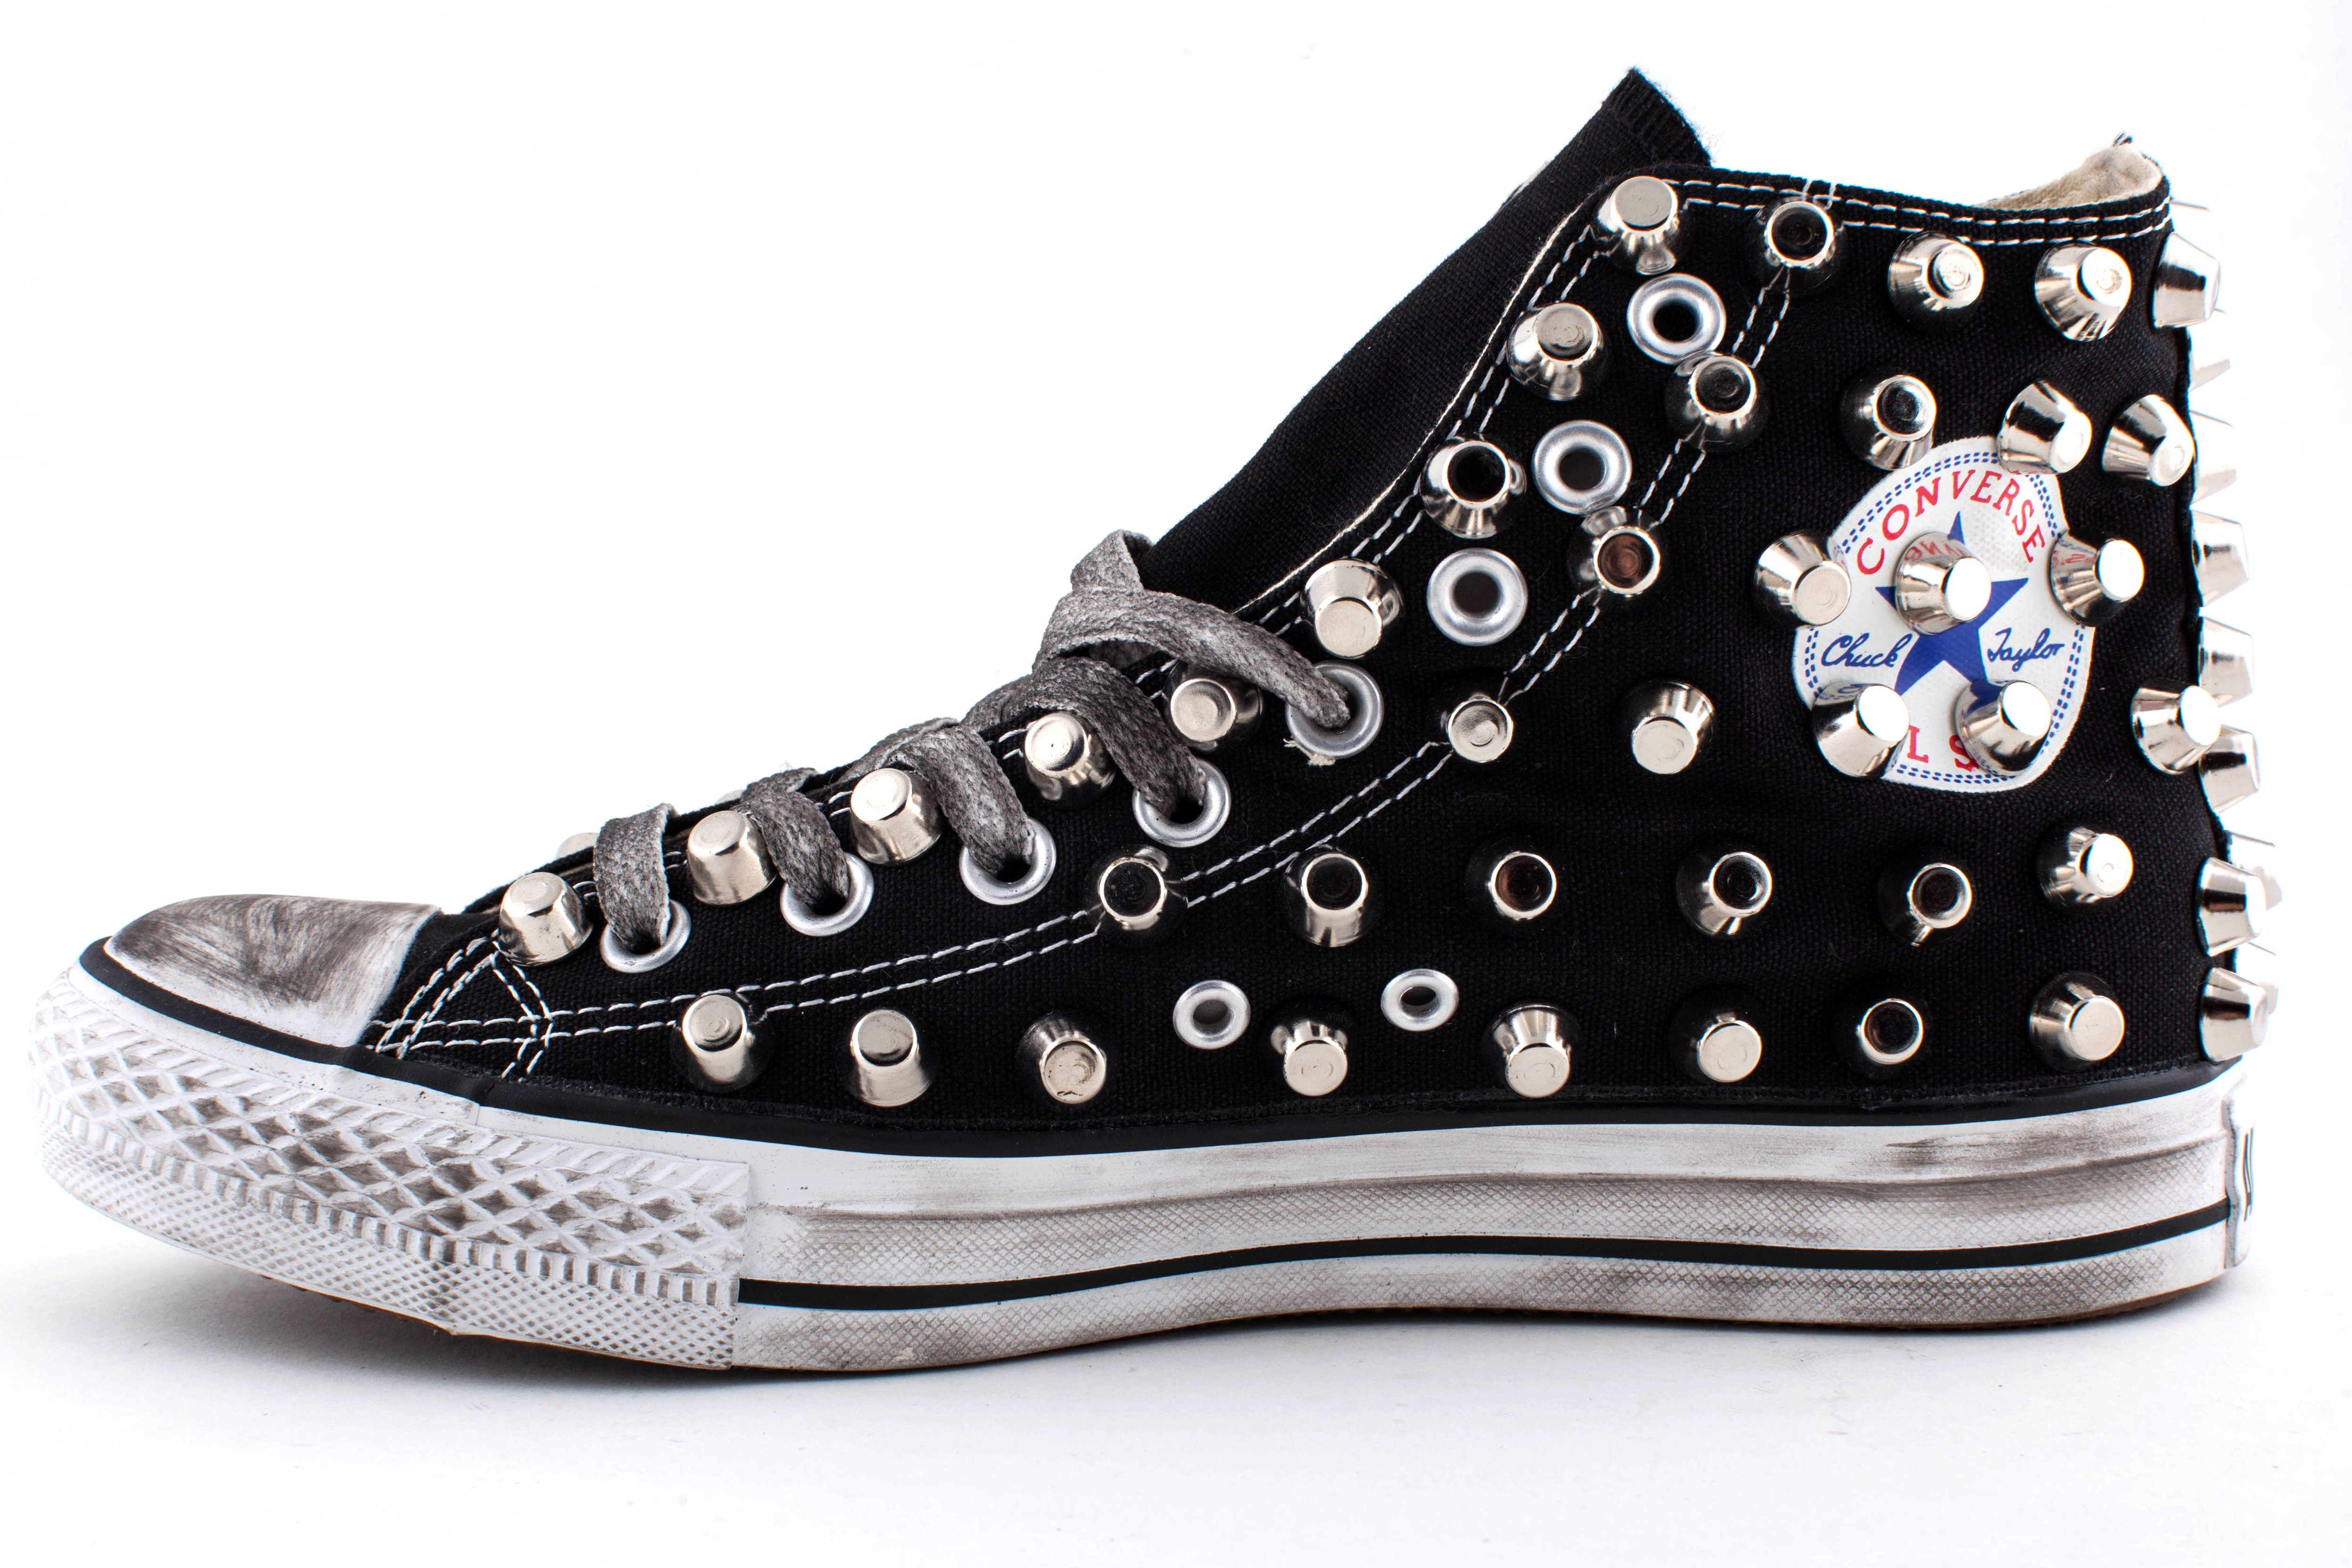 Converse All Star Spikes